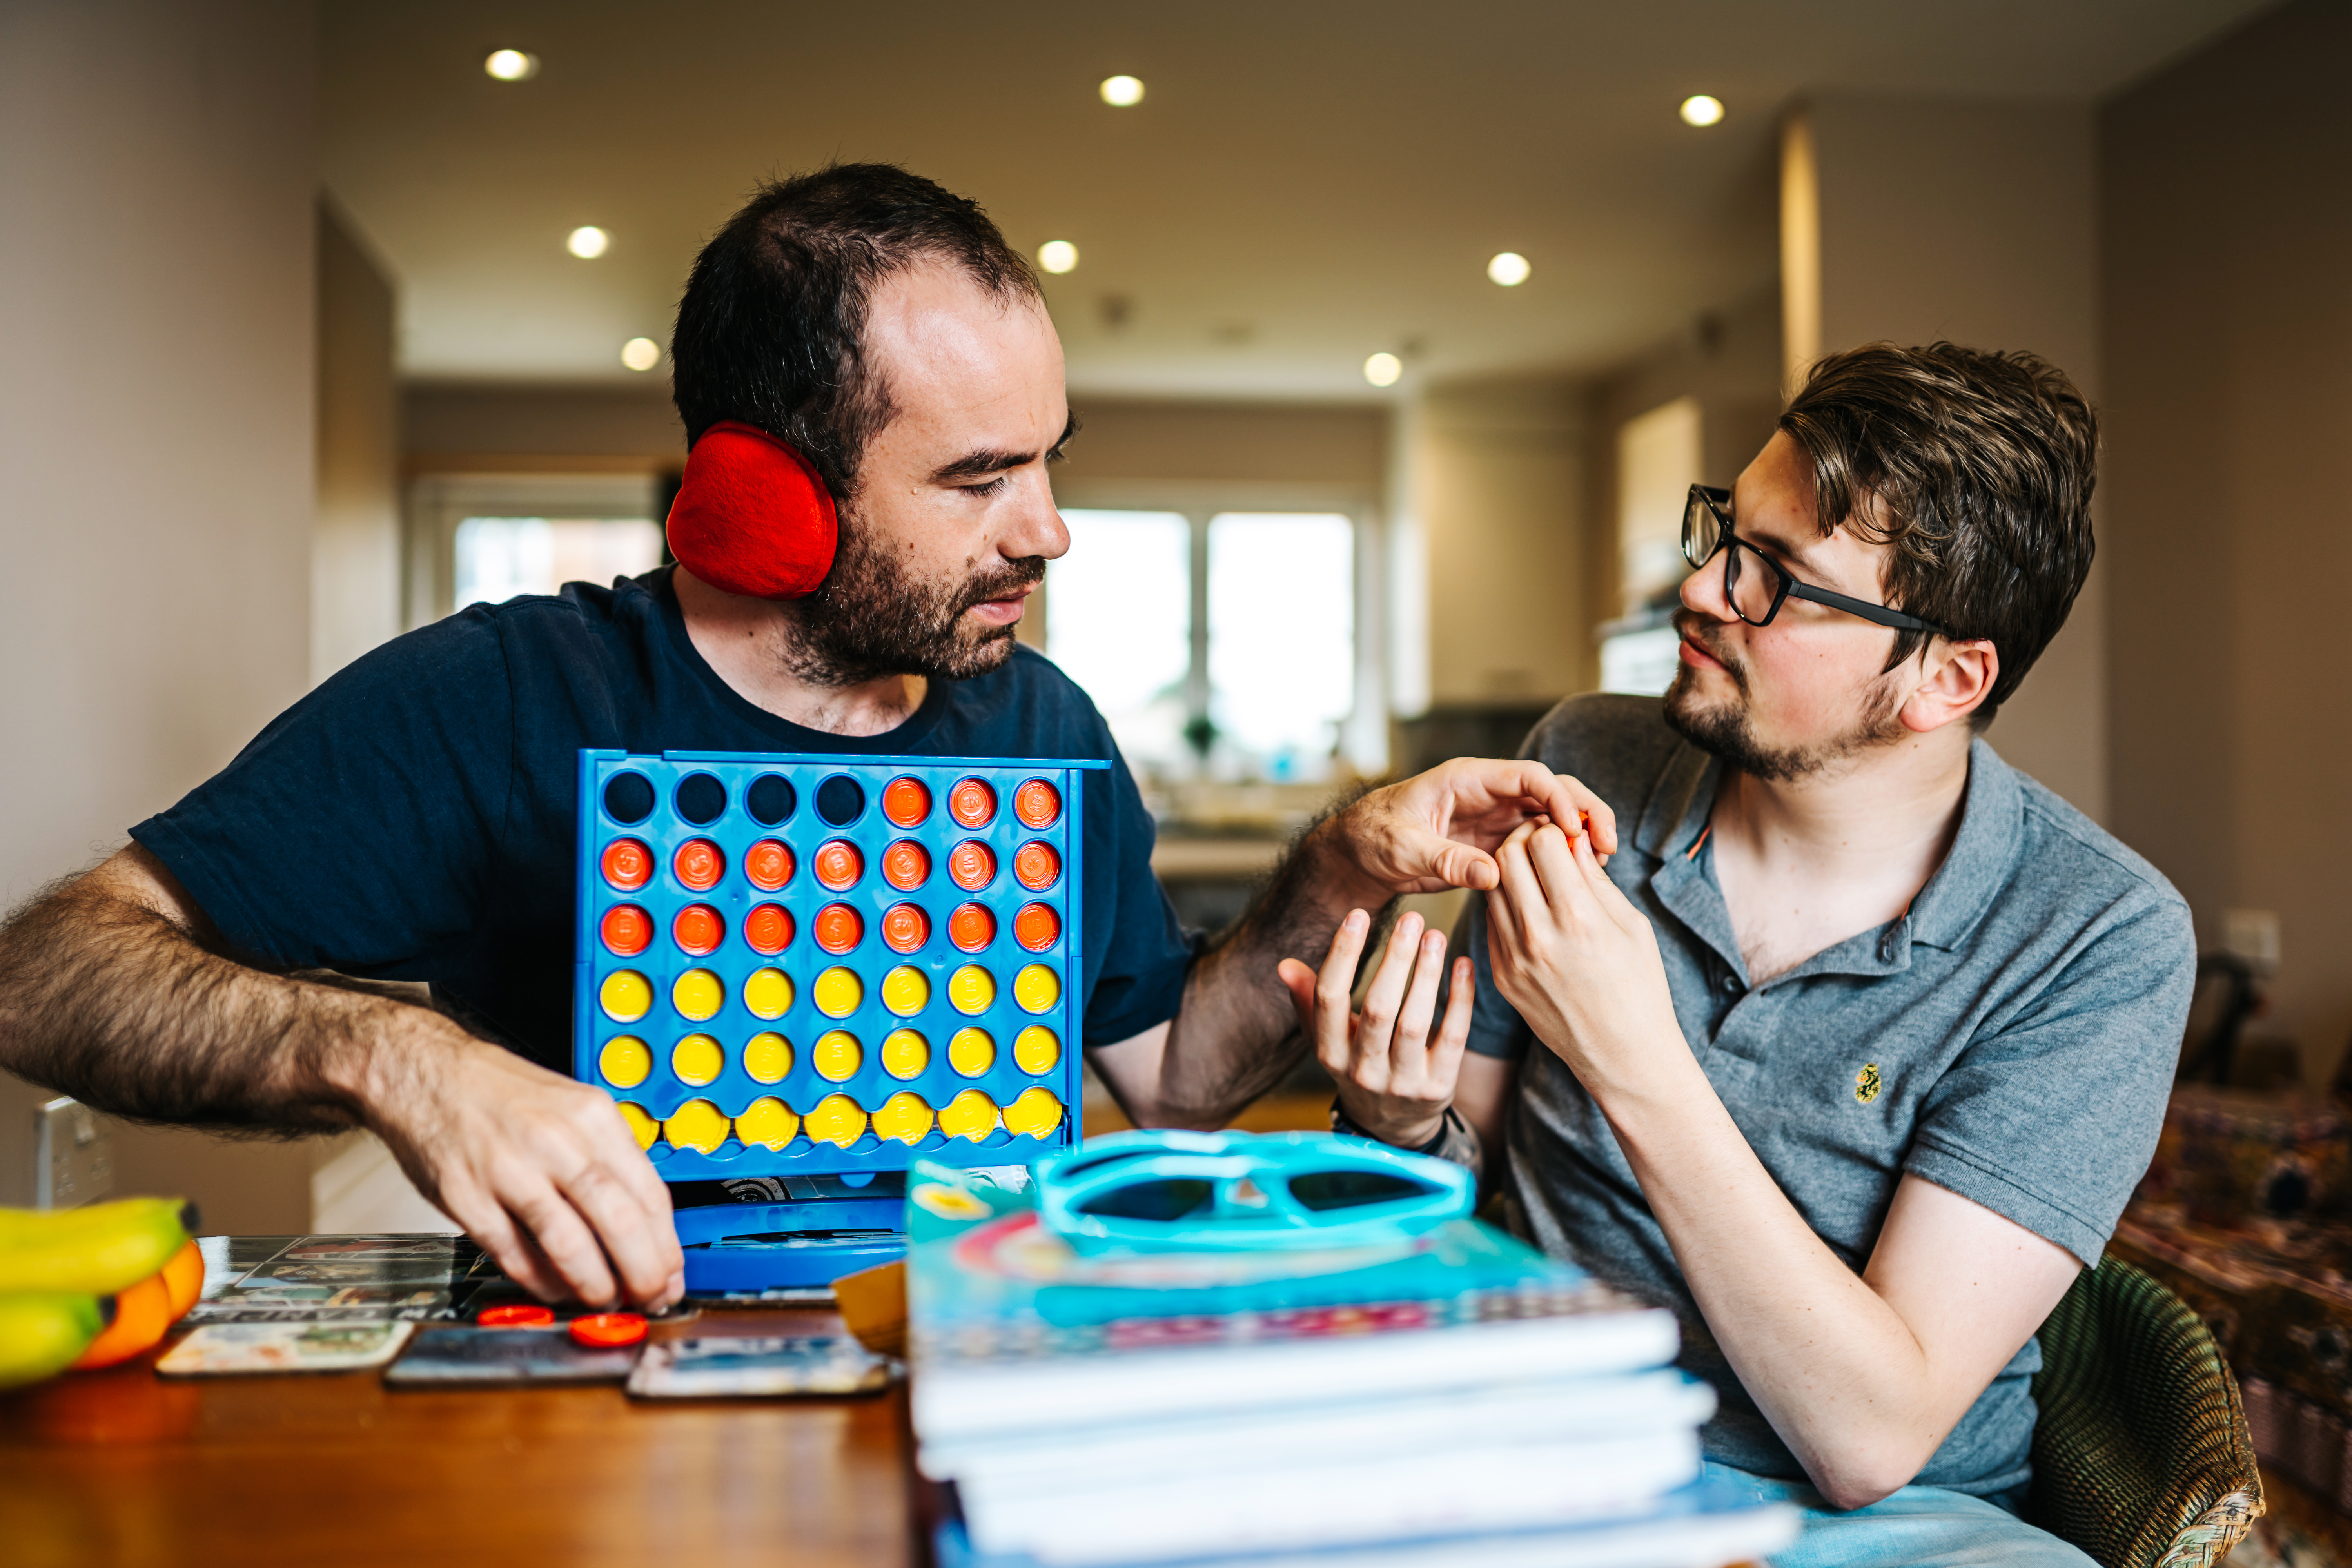 Two people playing connect four